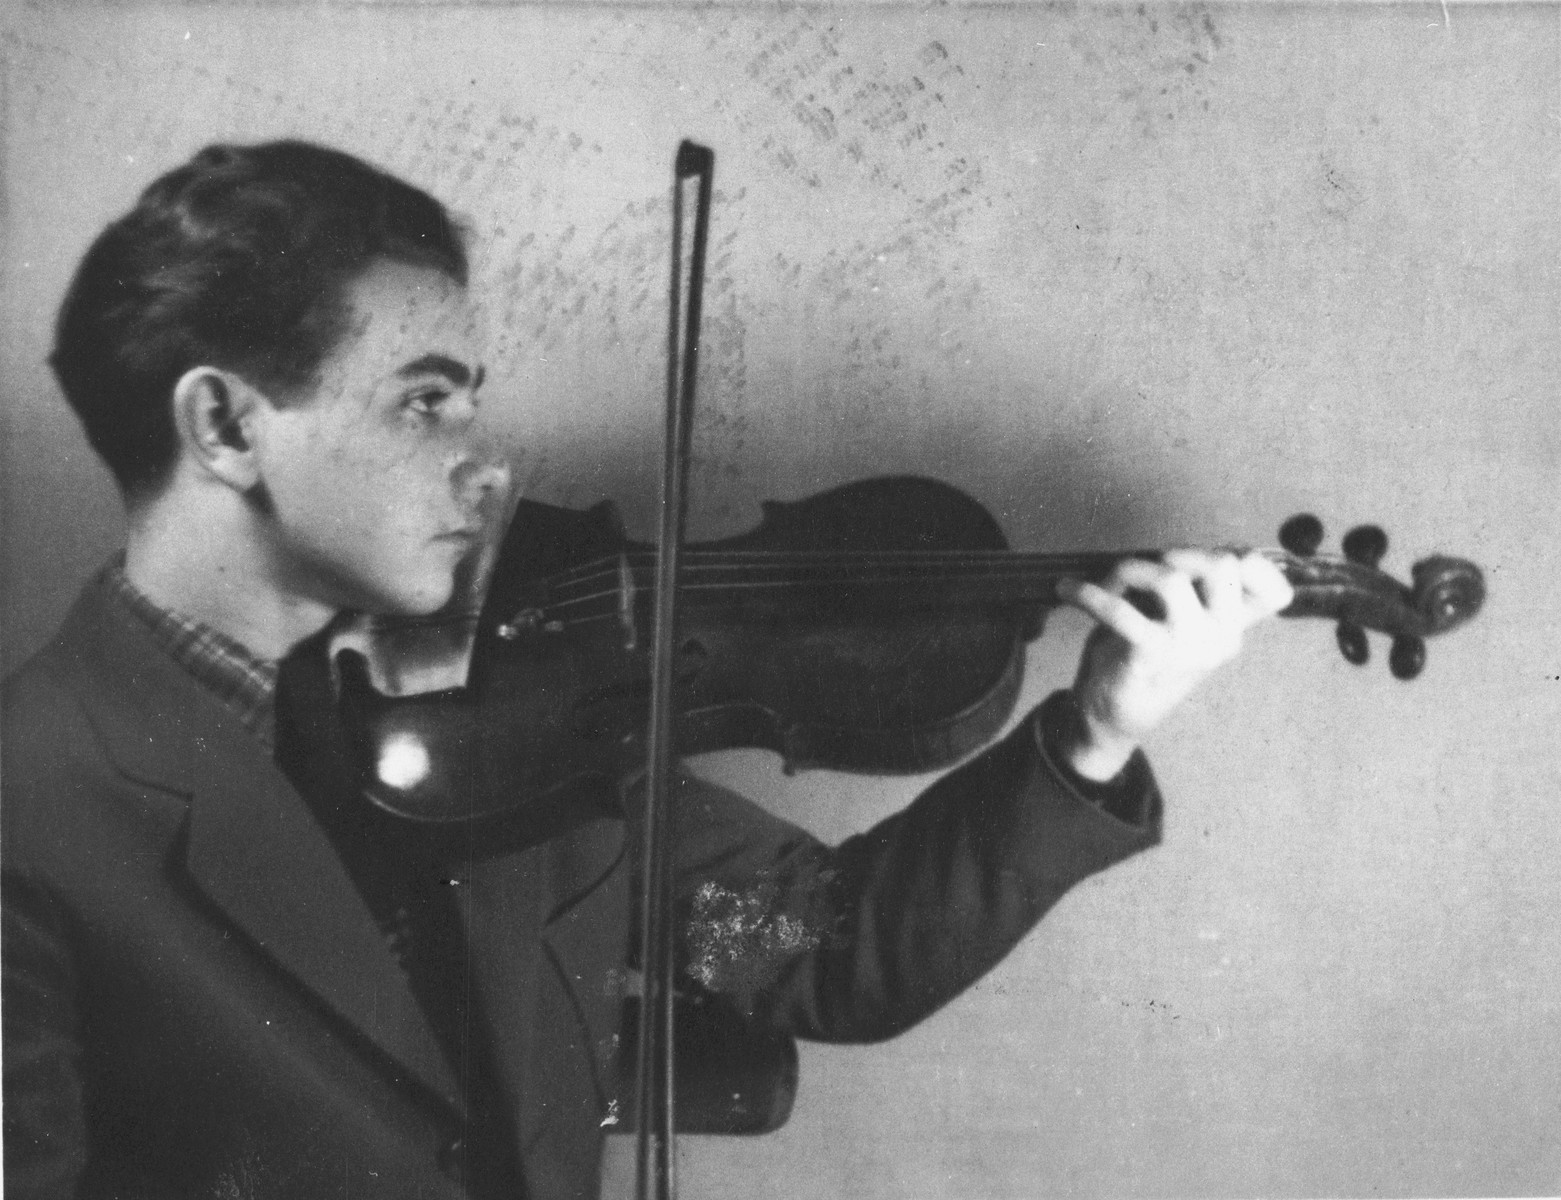 Portrait of the Bronislaw Eichenholz playing his violin in the Krakow ghetto.